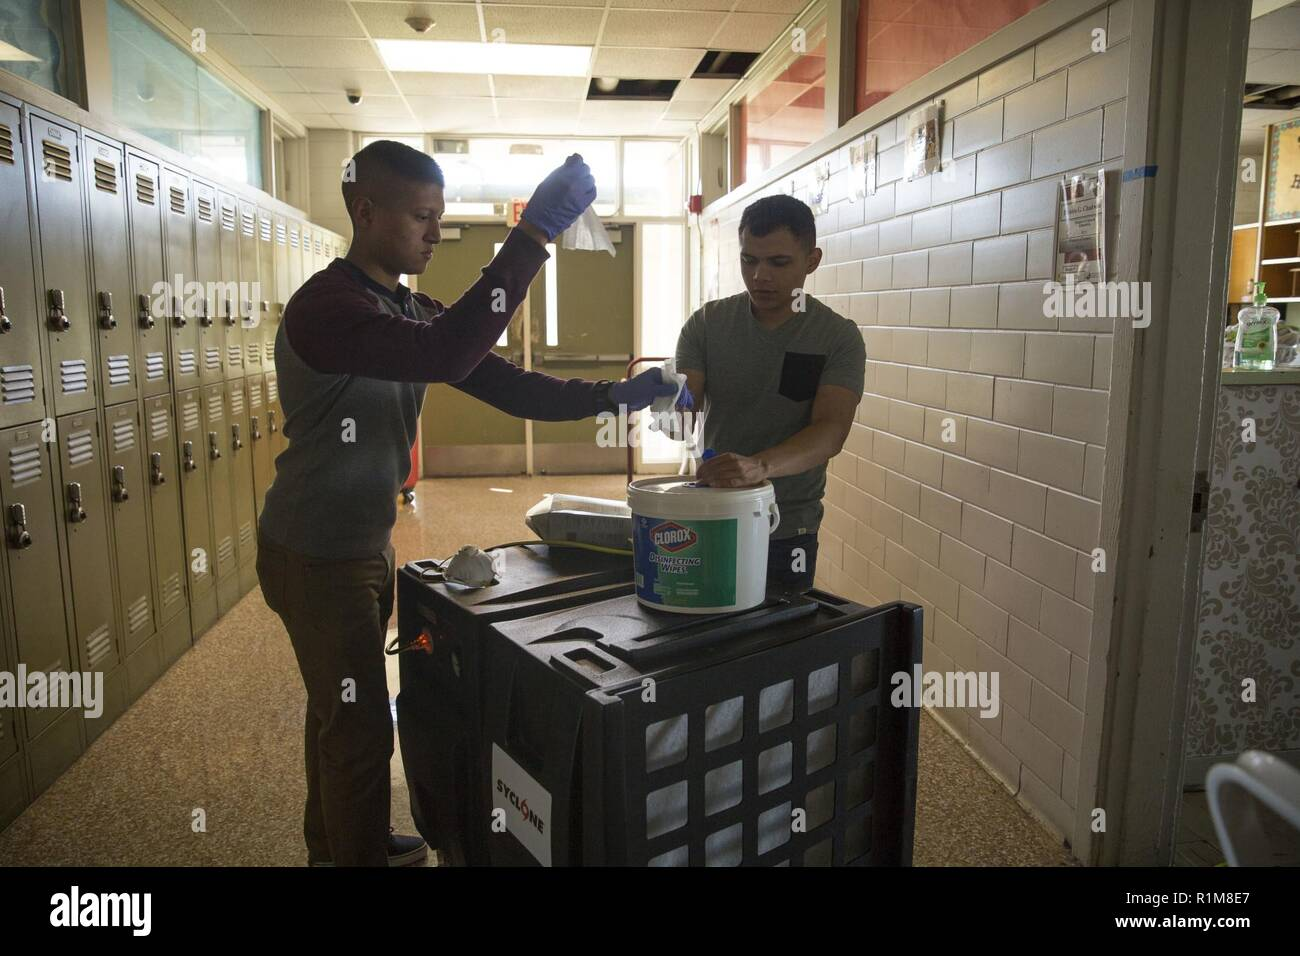 U.S. Marines with 3rd Battalion, 6th Marine Regiment, 2nd Marine Division assist with the clean-up after Hurricane Florence at Jacksonville High School in Jacksonville, N.C., Oct. 19, 2018. Marines have assisted with cleaning up in the aftermath of Hurricane Florence, the largest storm to hit the Carolinas since Hurricane Floyd in 1999. - Stock Image